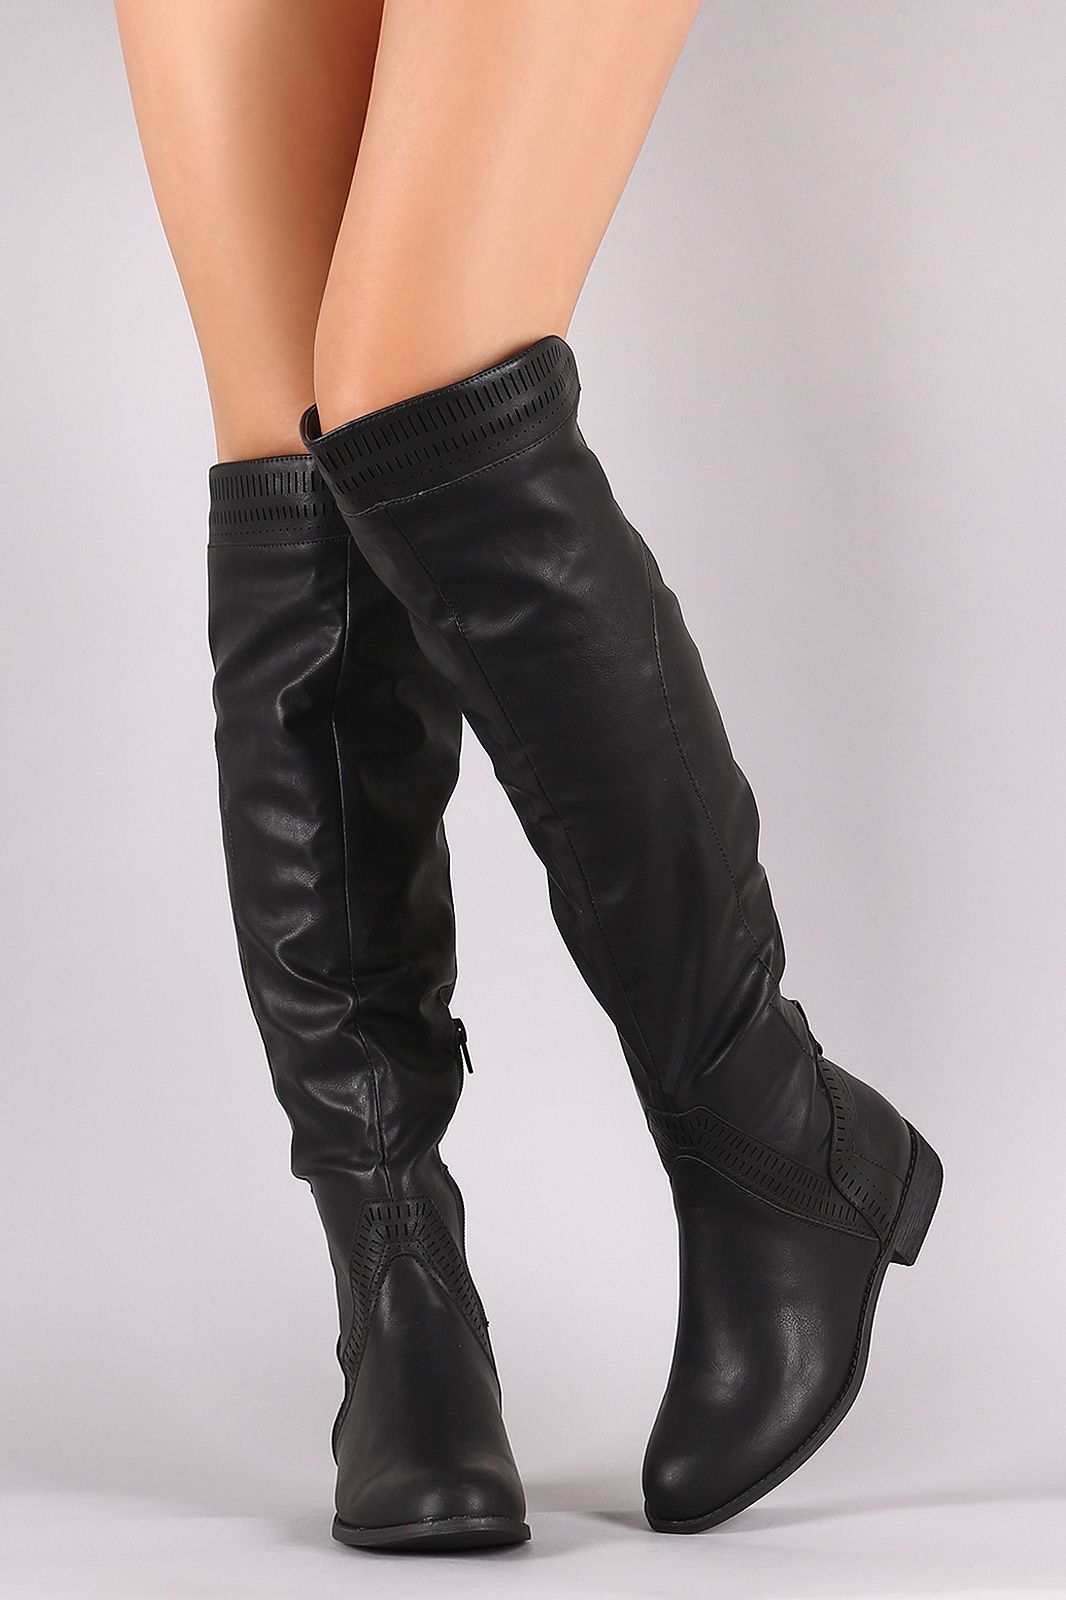 730c1c056d2 Perforated Riding Over-The-Knee Boots